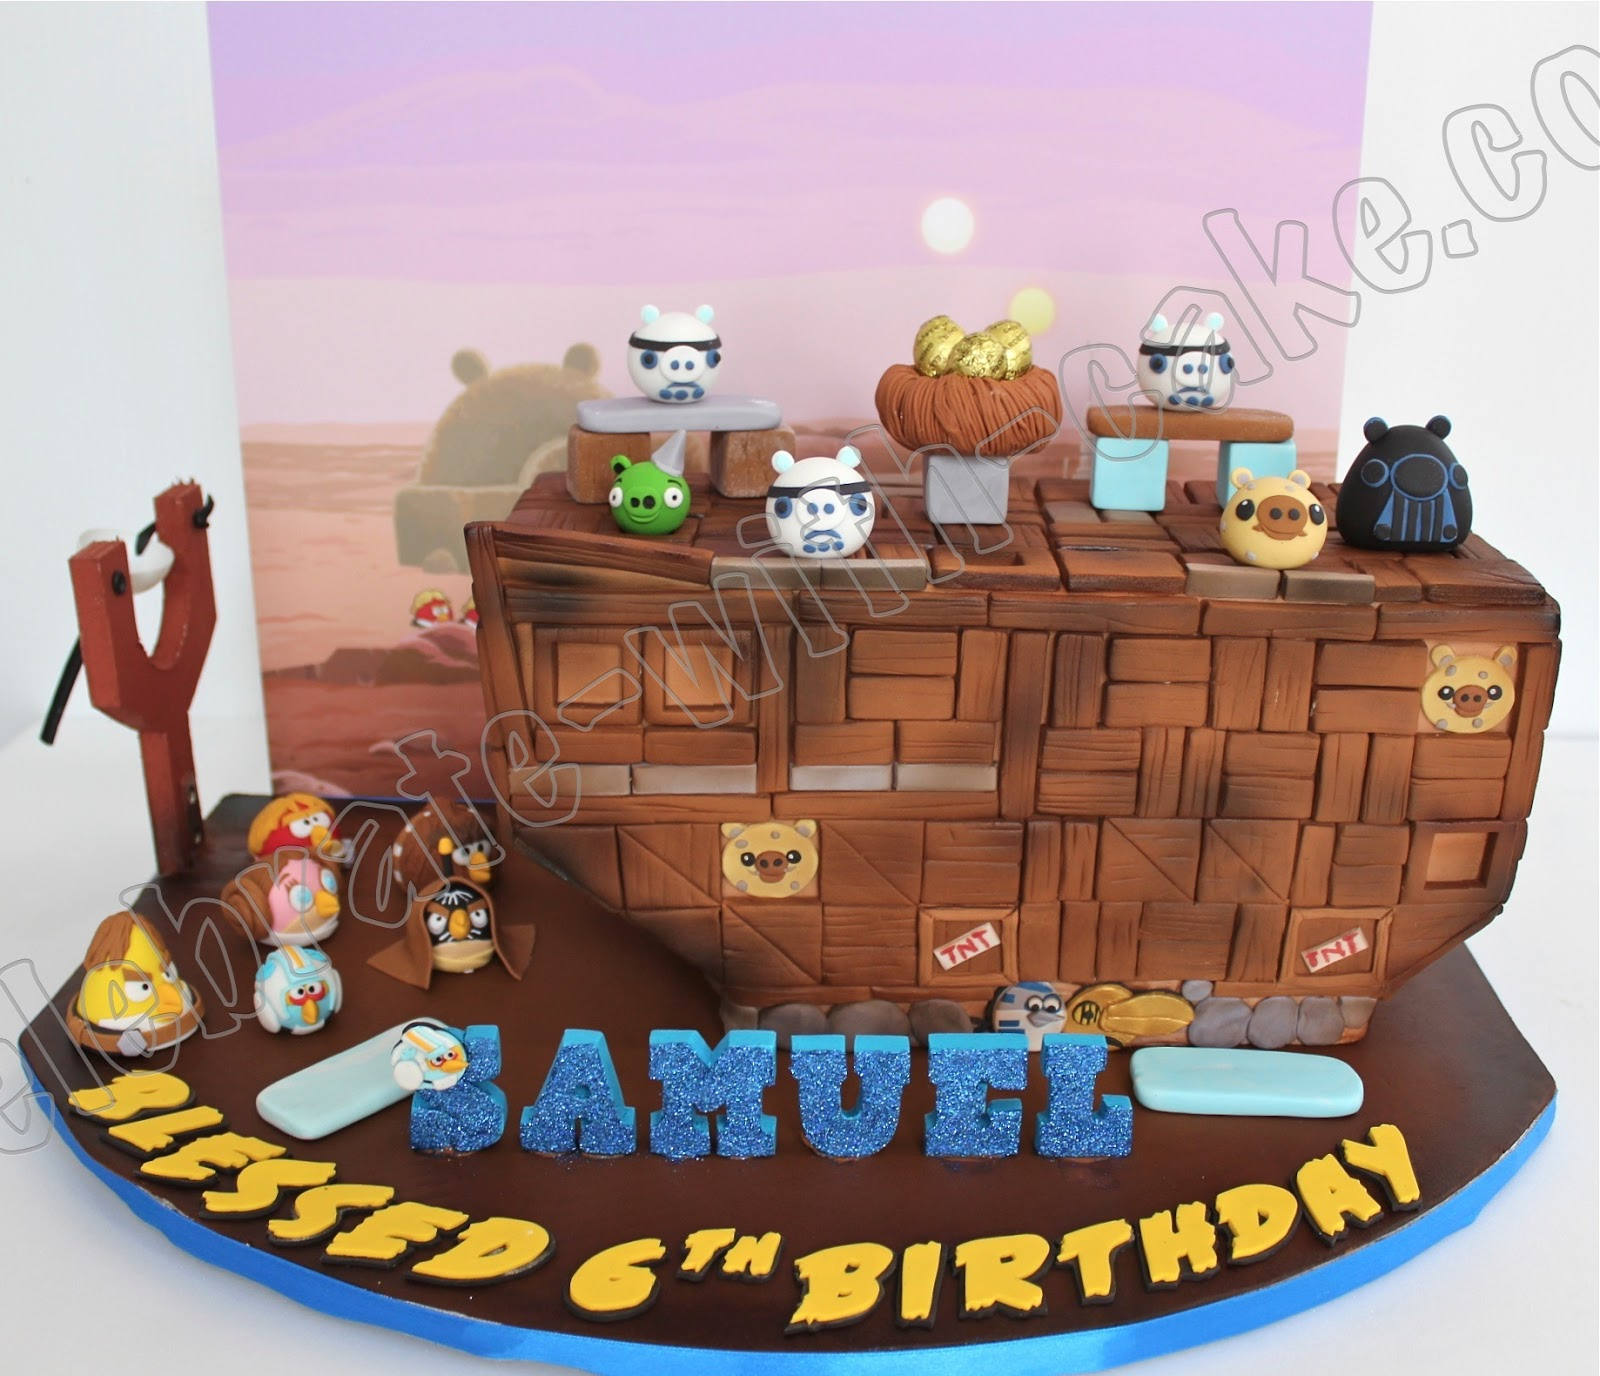 Celebrate With Cake Playable Angry Birds Star Wars Cake